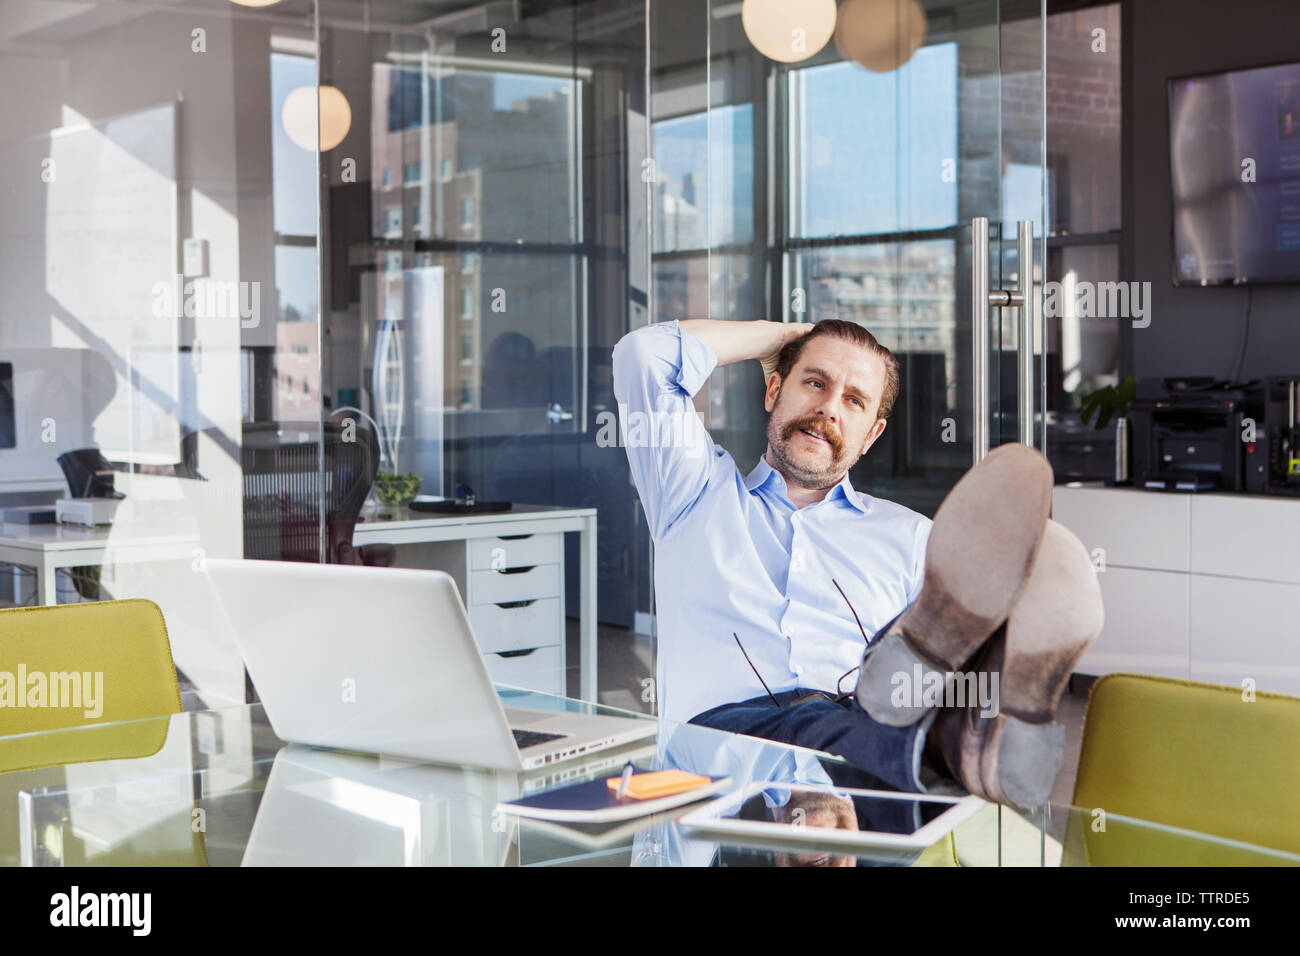 Relaxed businessman sitting with feet up on conference table in board room - Stock Image